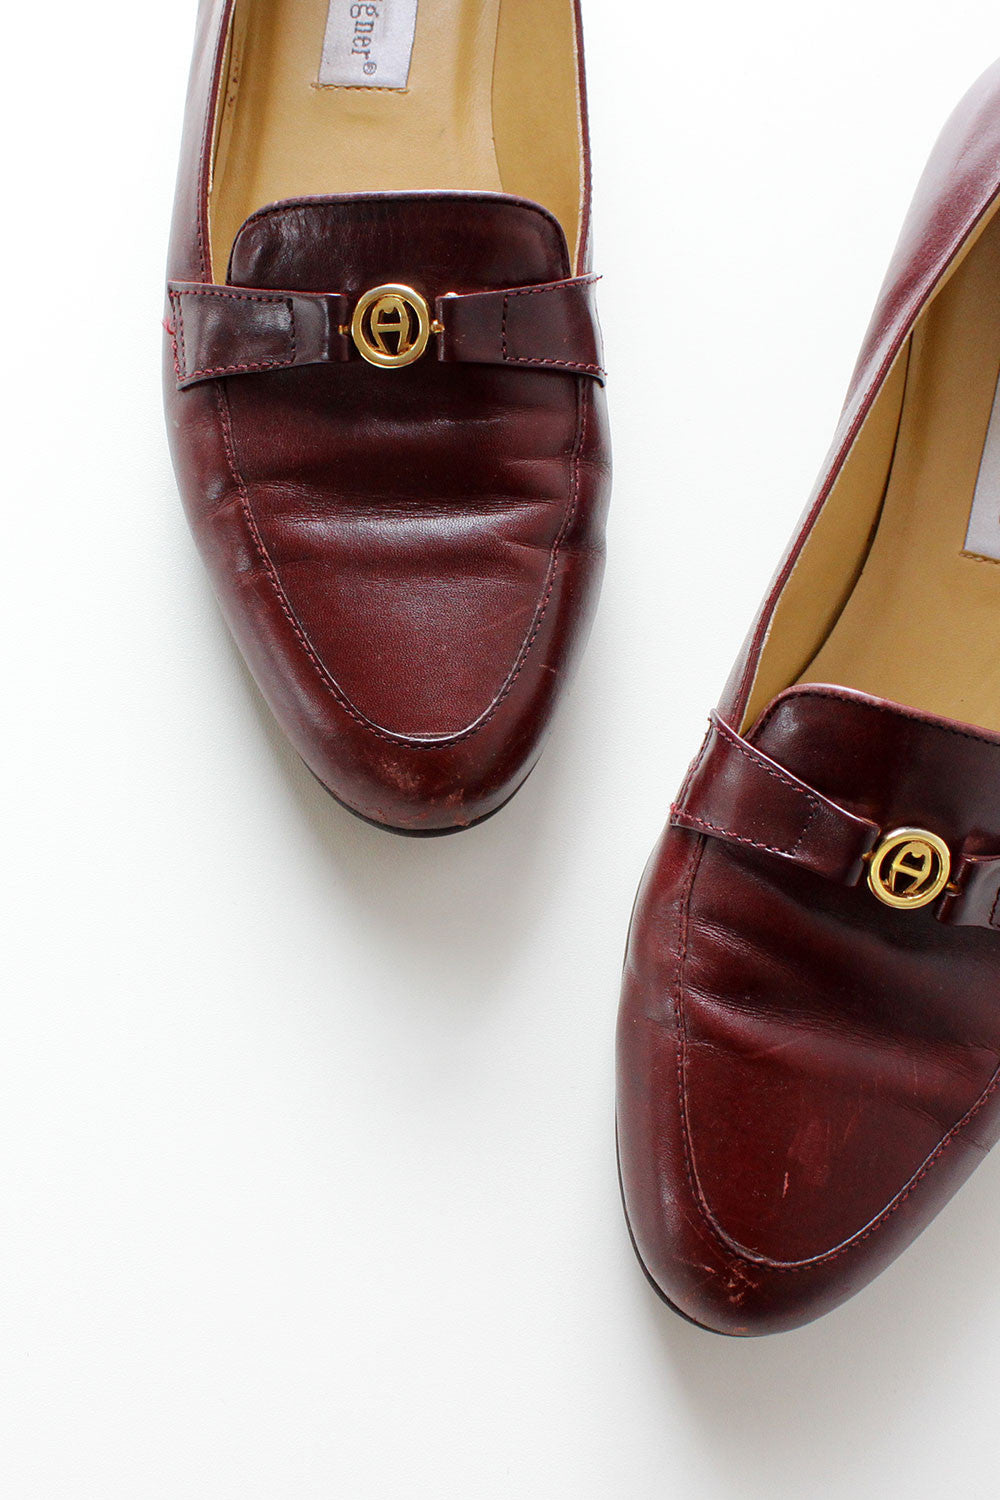 Aigner Medallion Loafers 9